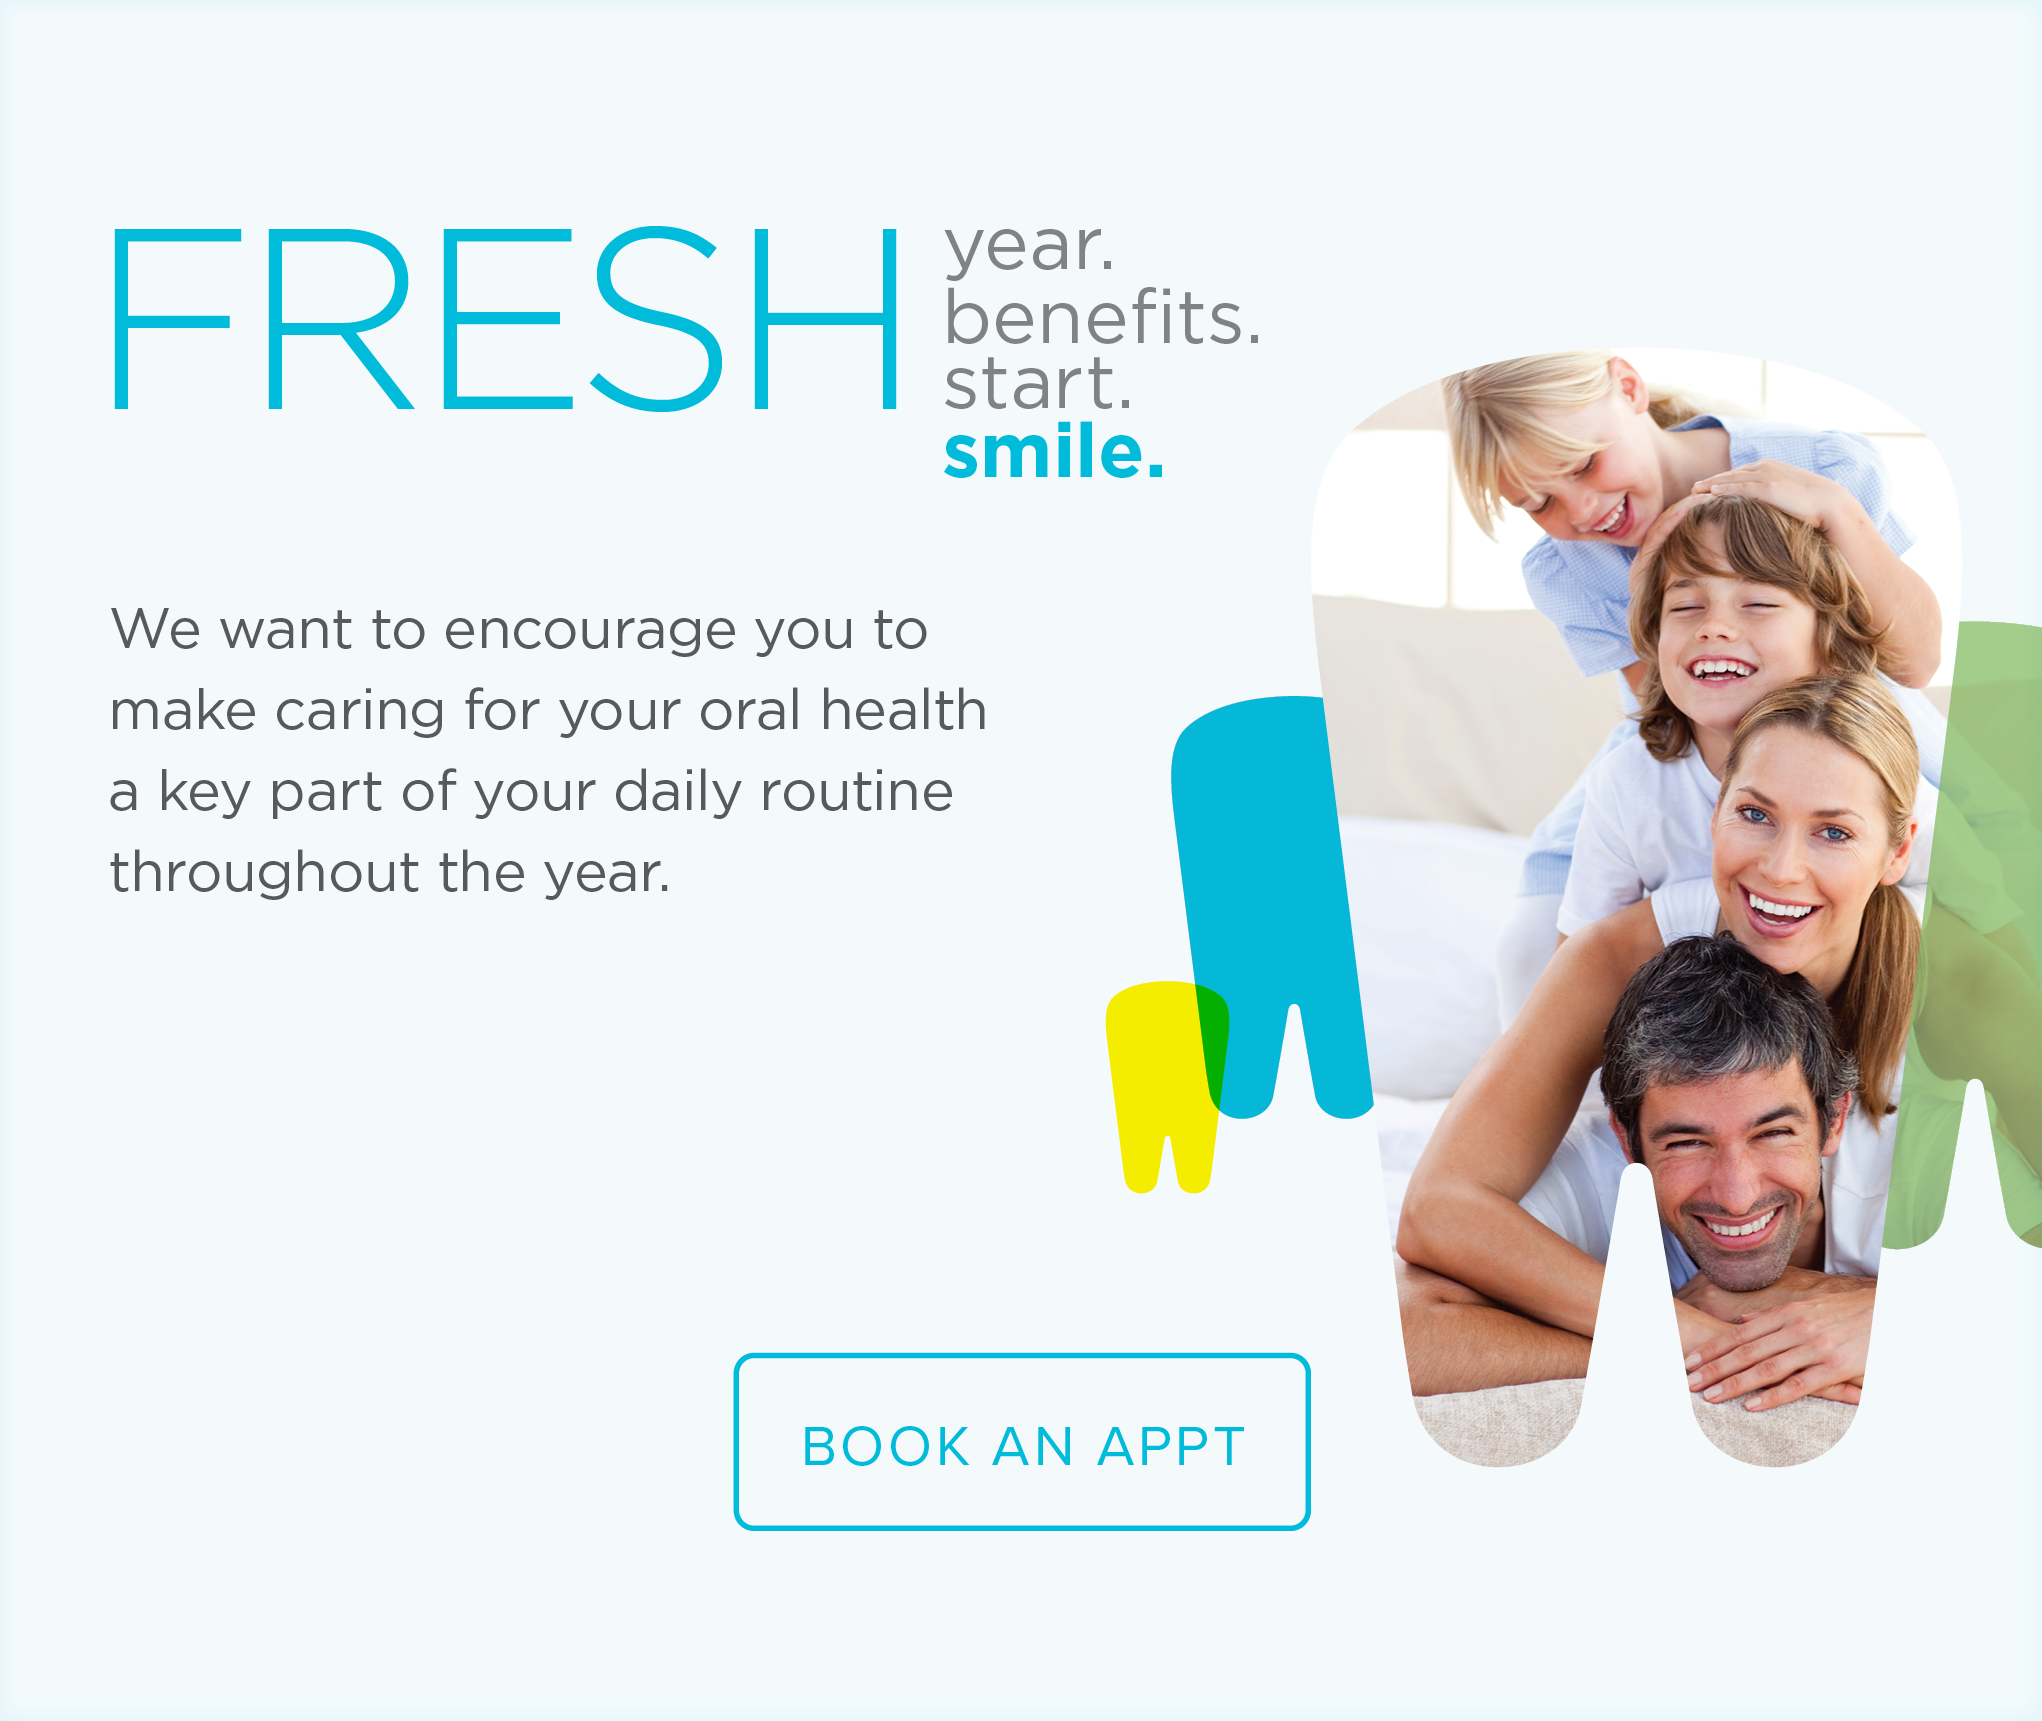 Rancho Cordova Smiles Dentistry - Make the Most of Your Benefits